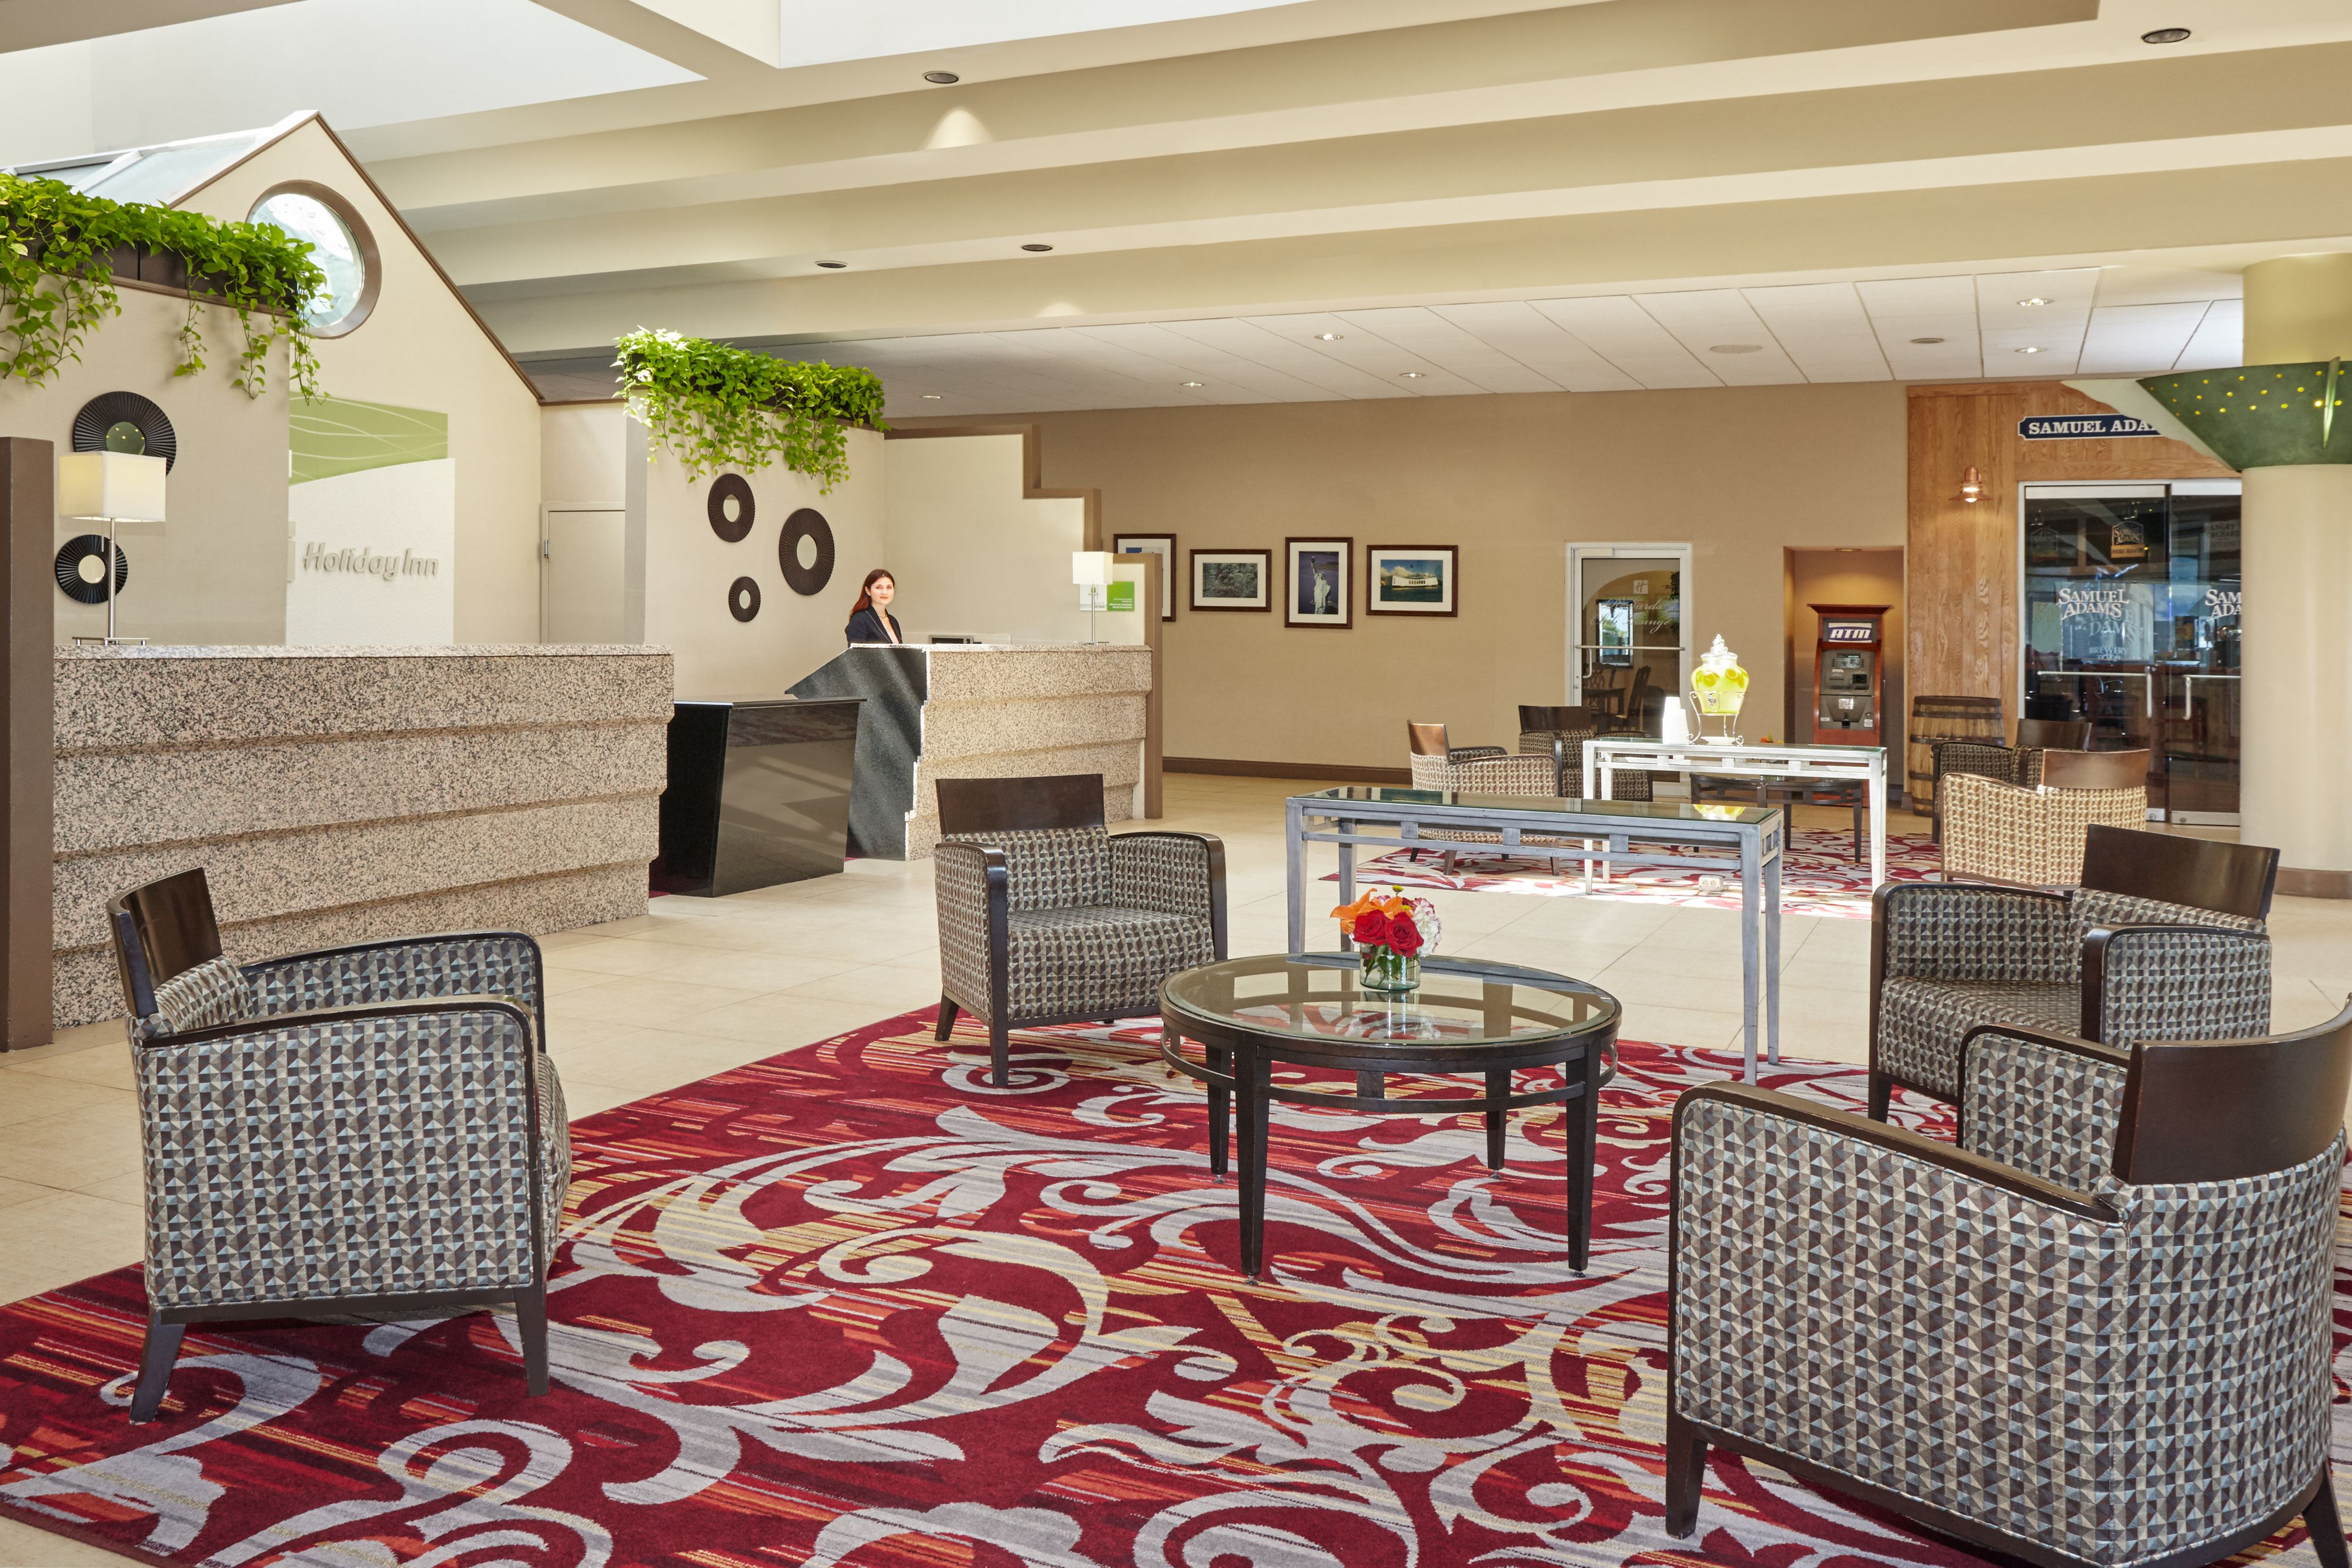 Holiday Inn Allentown-I-78 (Lehigh Valley) image 4